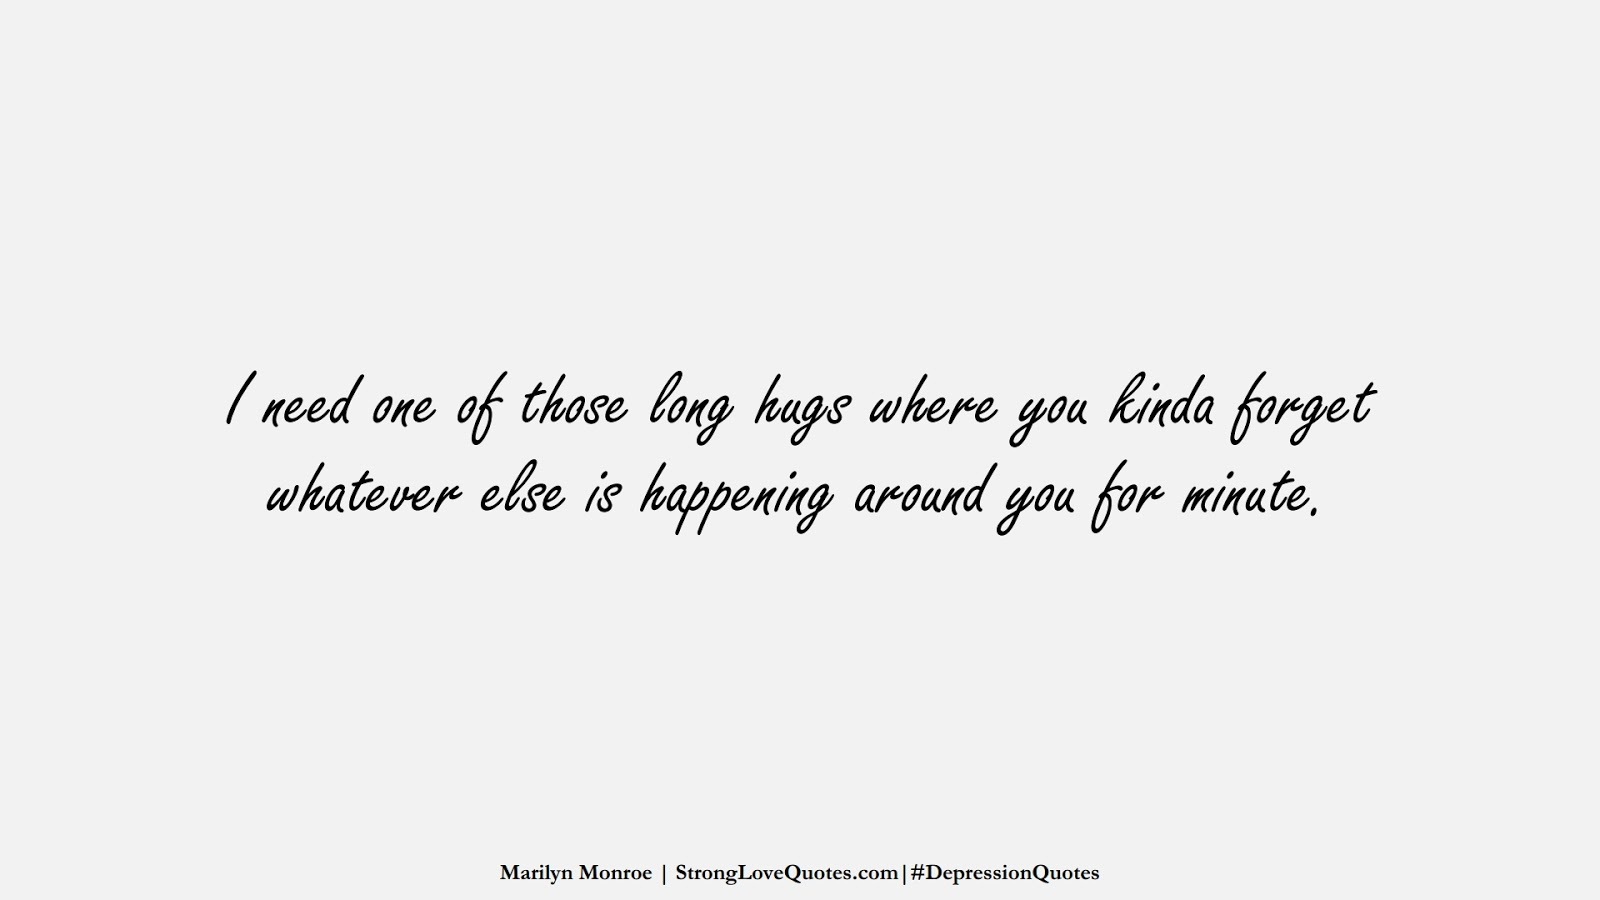 I need one of those long hugs where you kinda forget whatever else is happening around you for minute. (Marilyn Monroe);  #DepressionQuotes